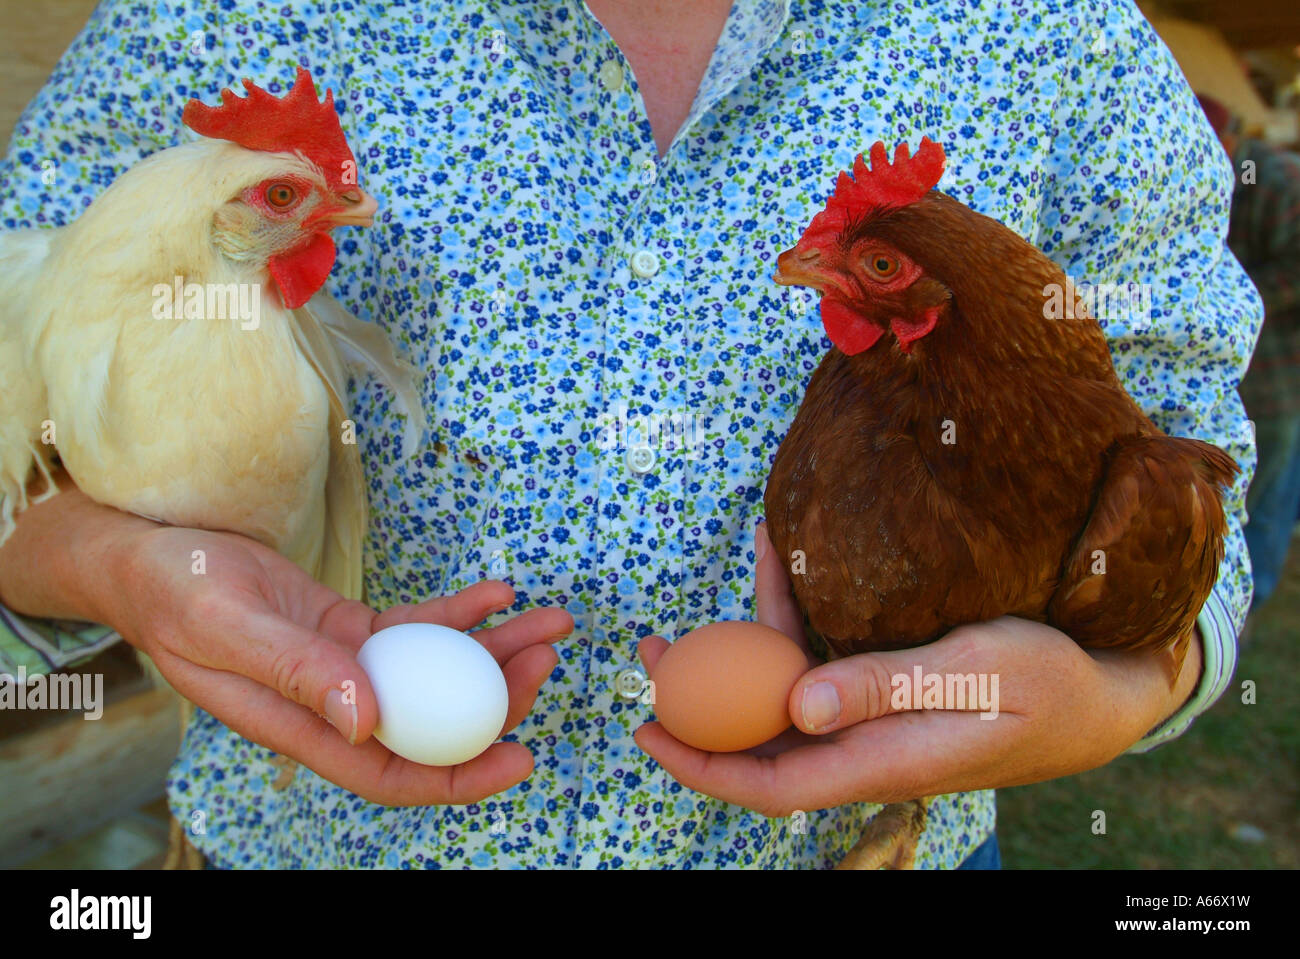 genetics-a-woman-holds-a-brown-chicken-a